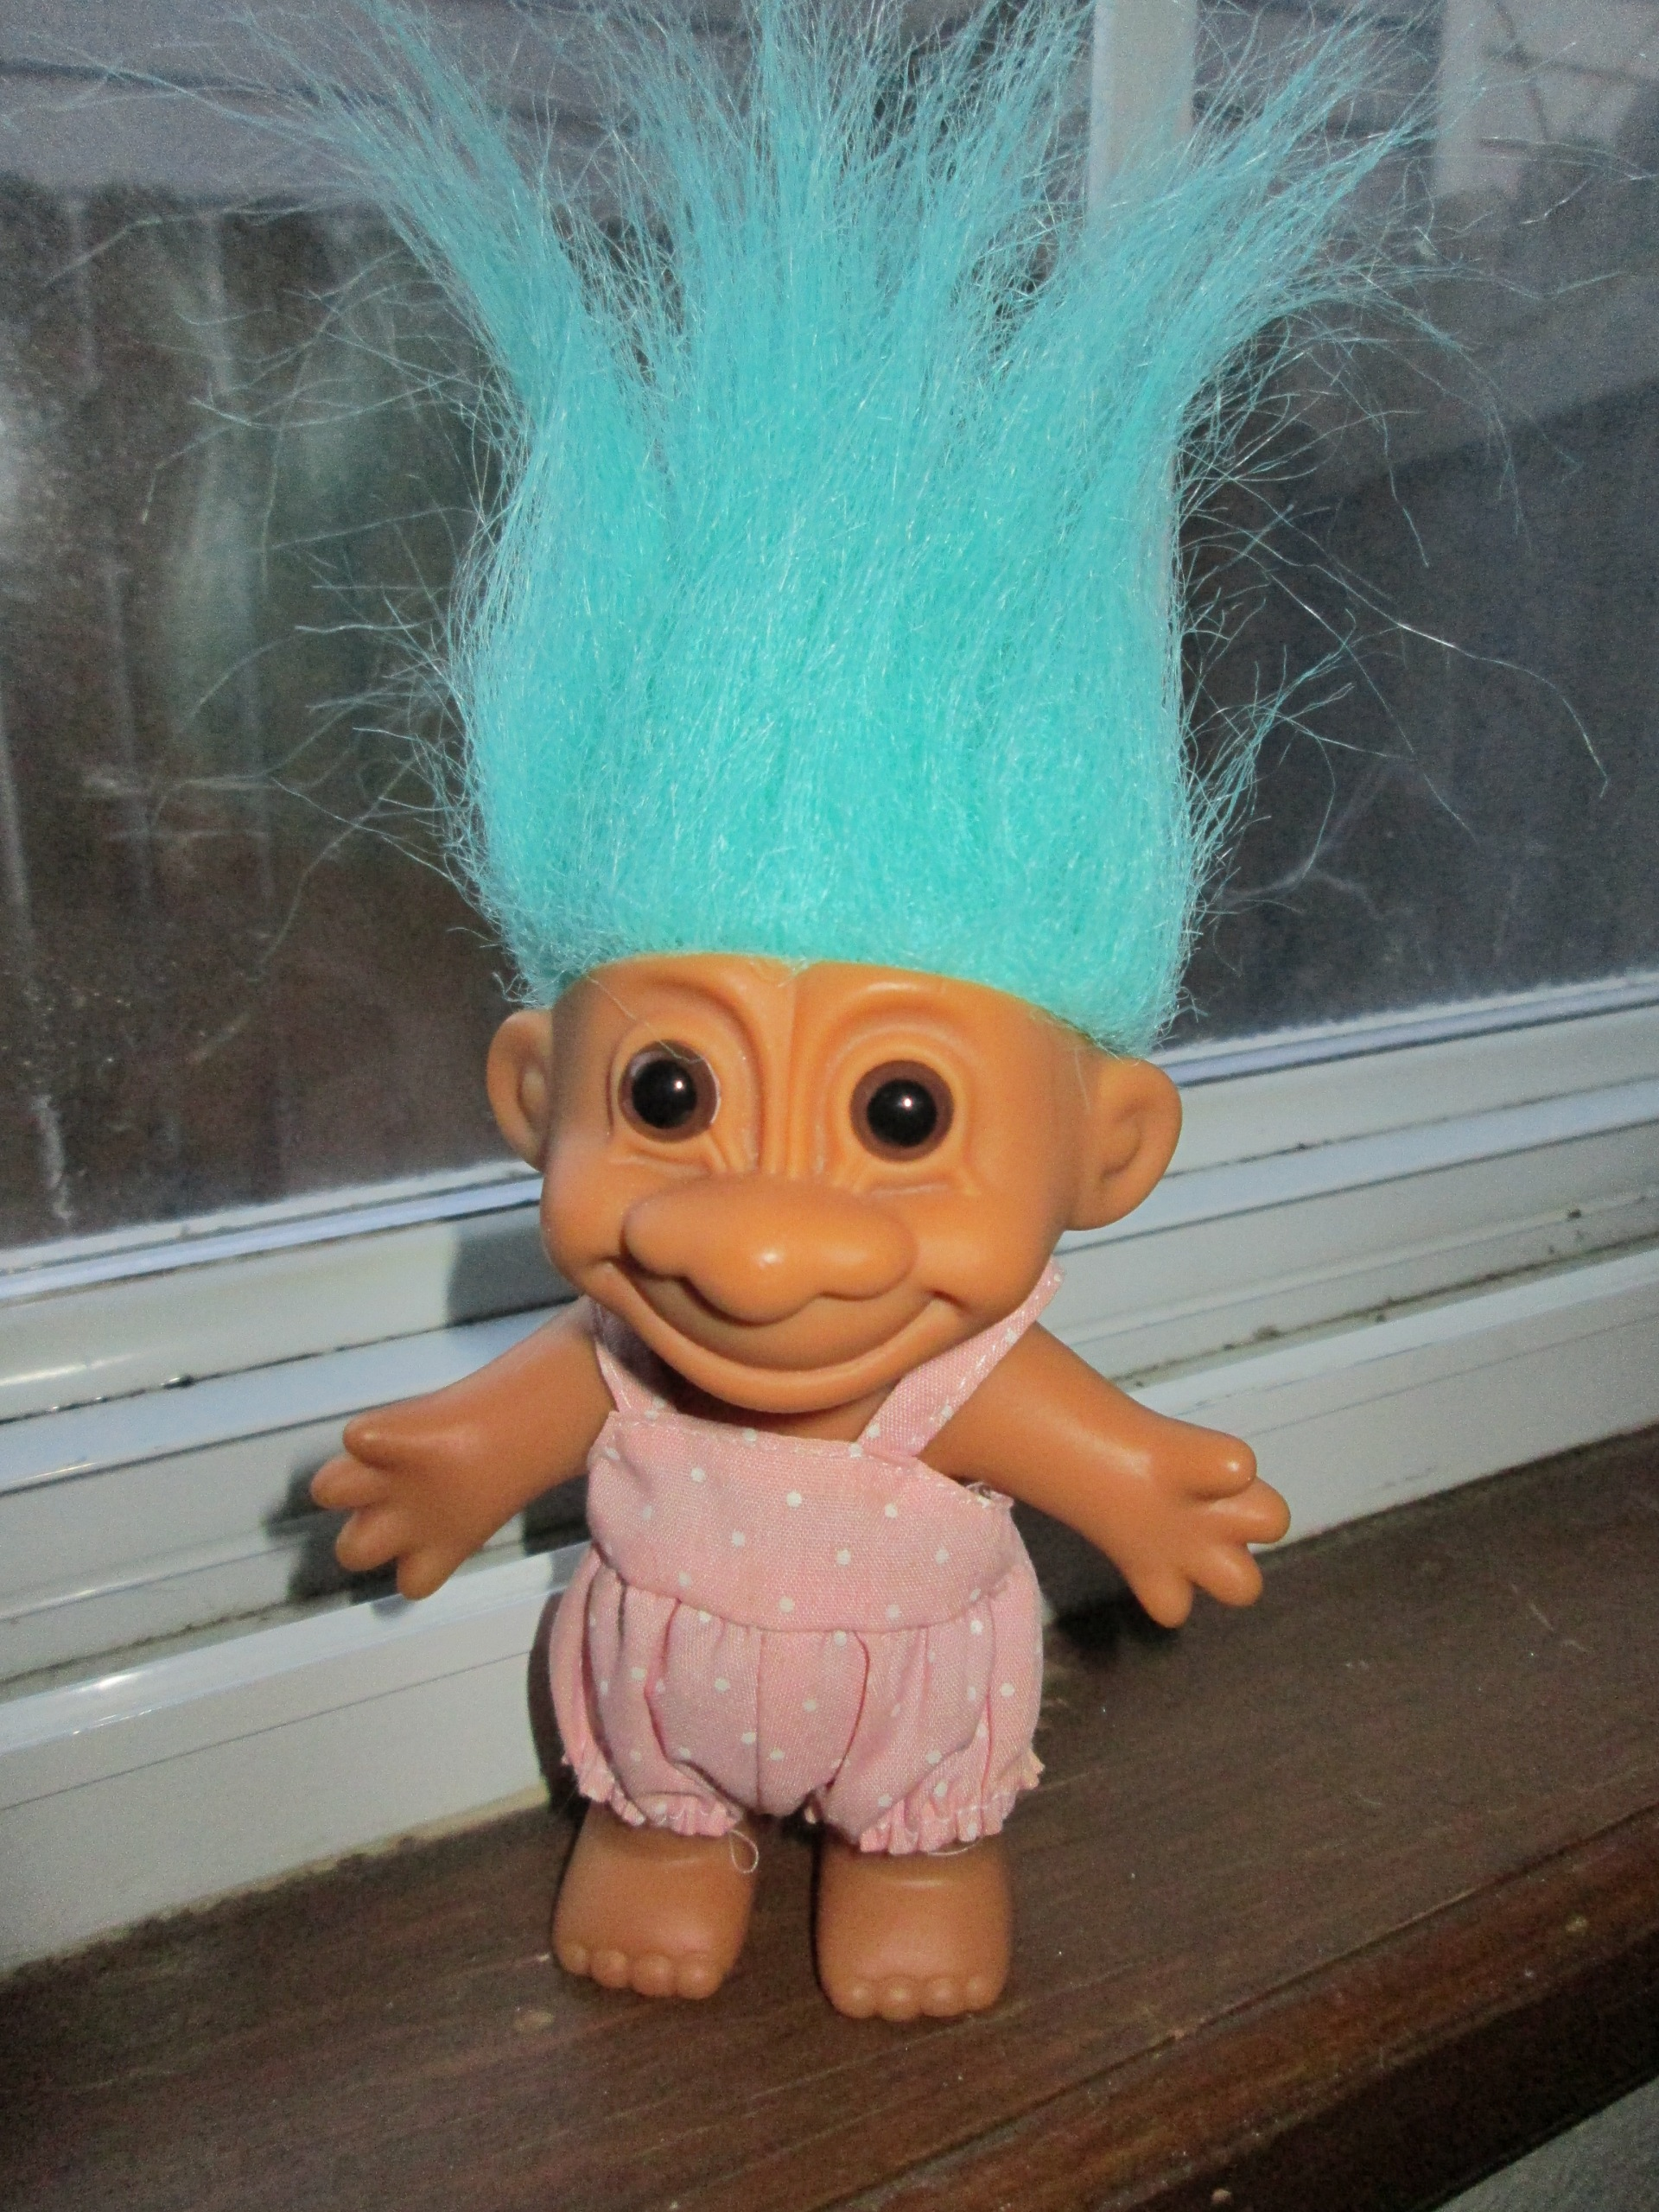 tiny troll doll with neon turquoise hair